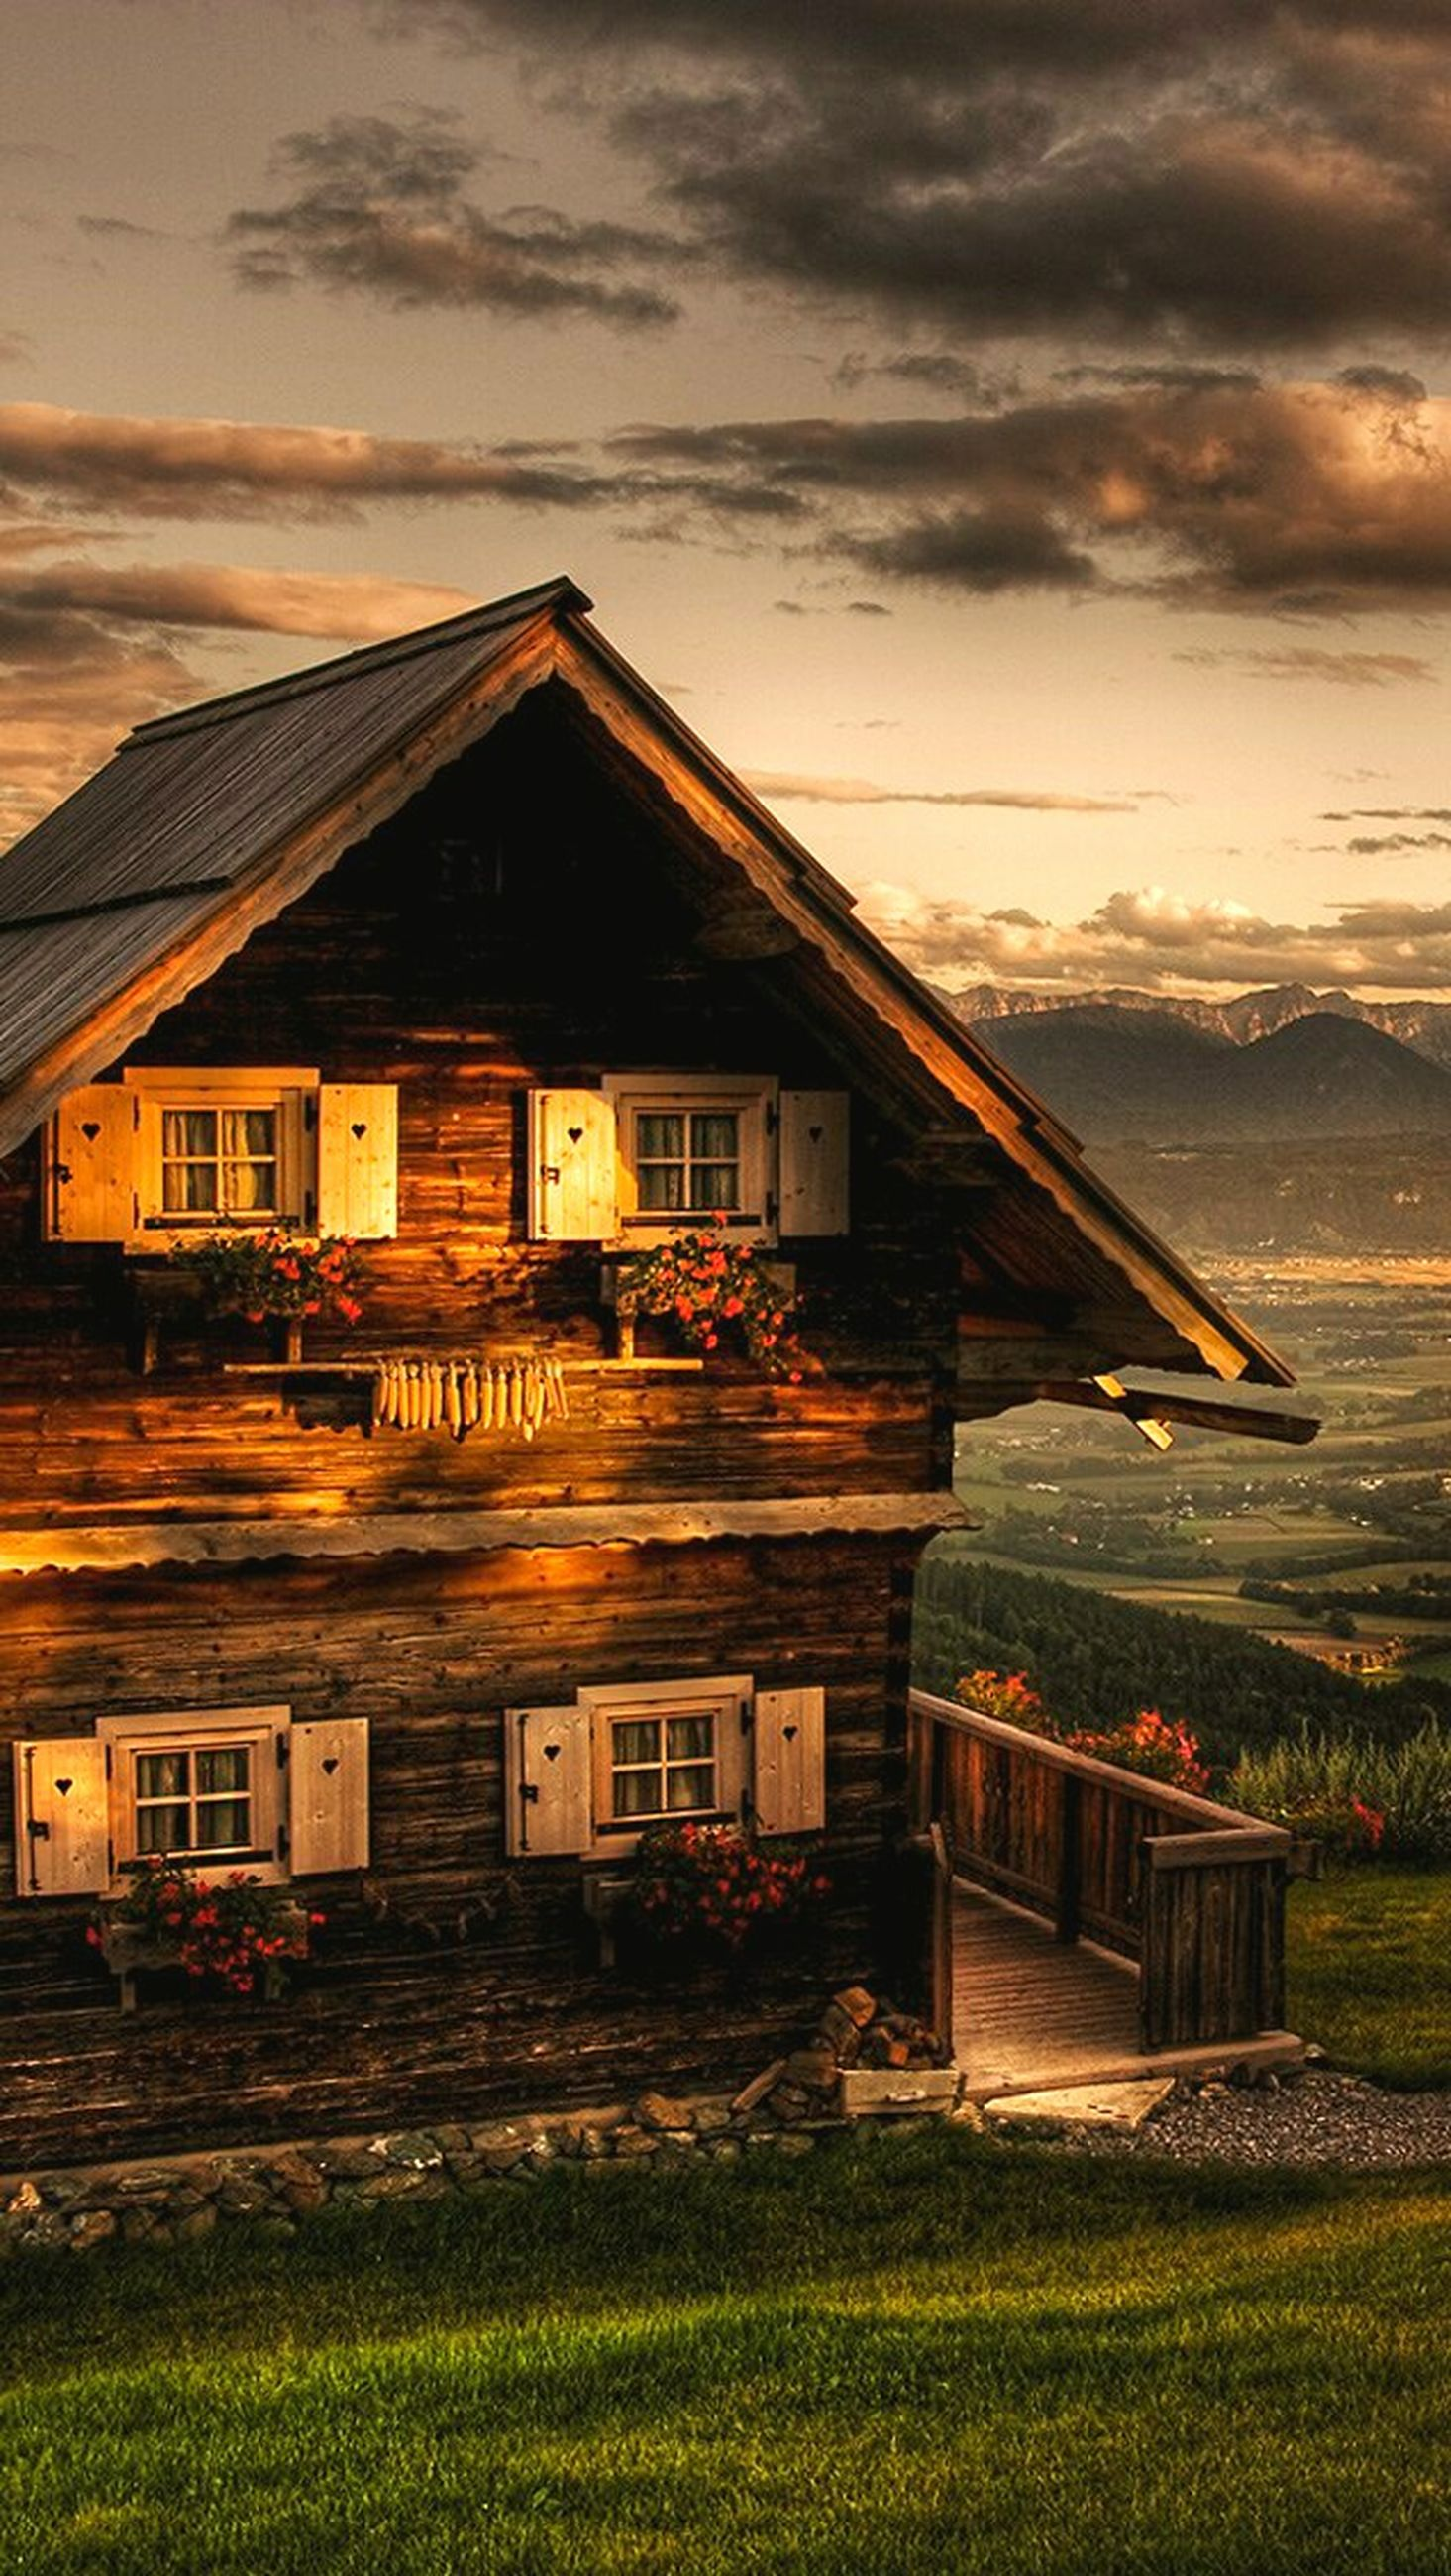 architecture, built structure, building exterior, house, sunset, sky, residential structure, residential building, sunlight, cloud - sky, water, orange color, exterior, outdoors, cloudy, scenics, tranquility, facade, romantic sky, tranquil scene, no people